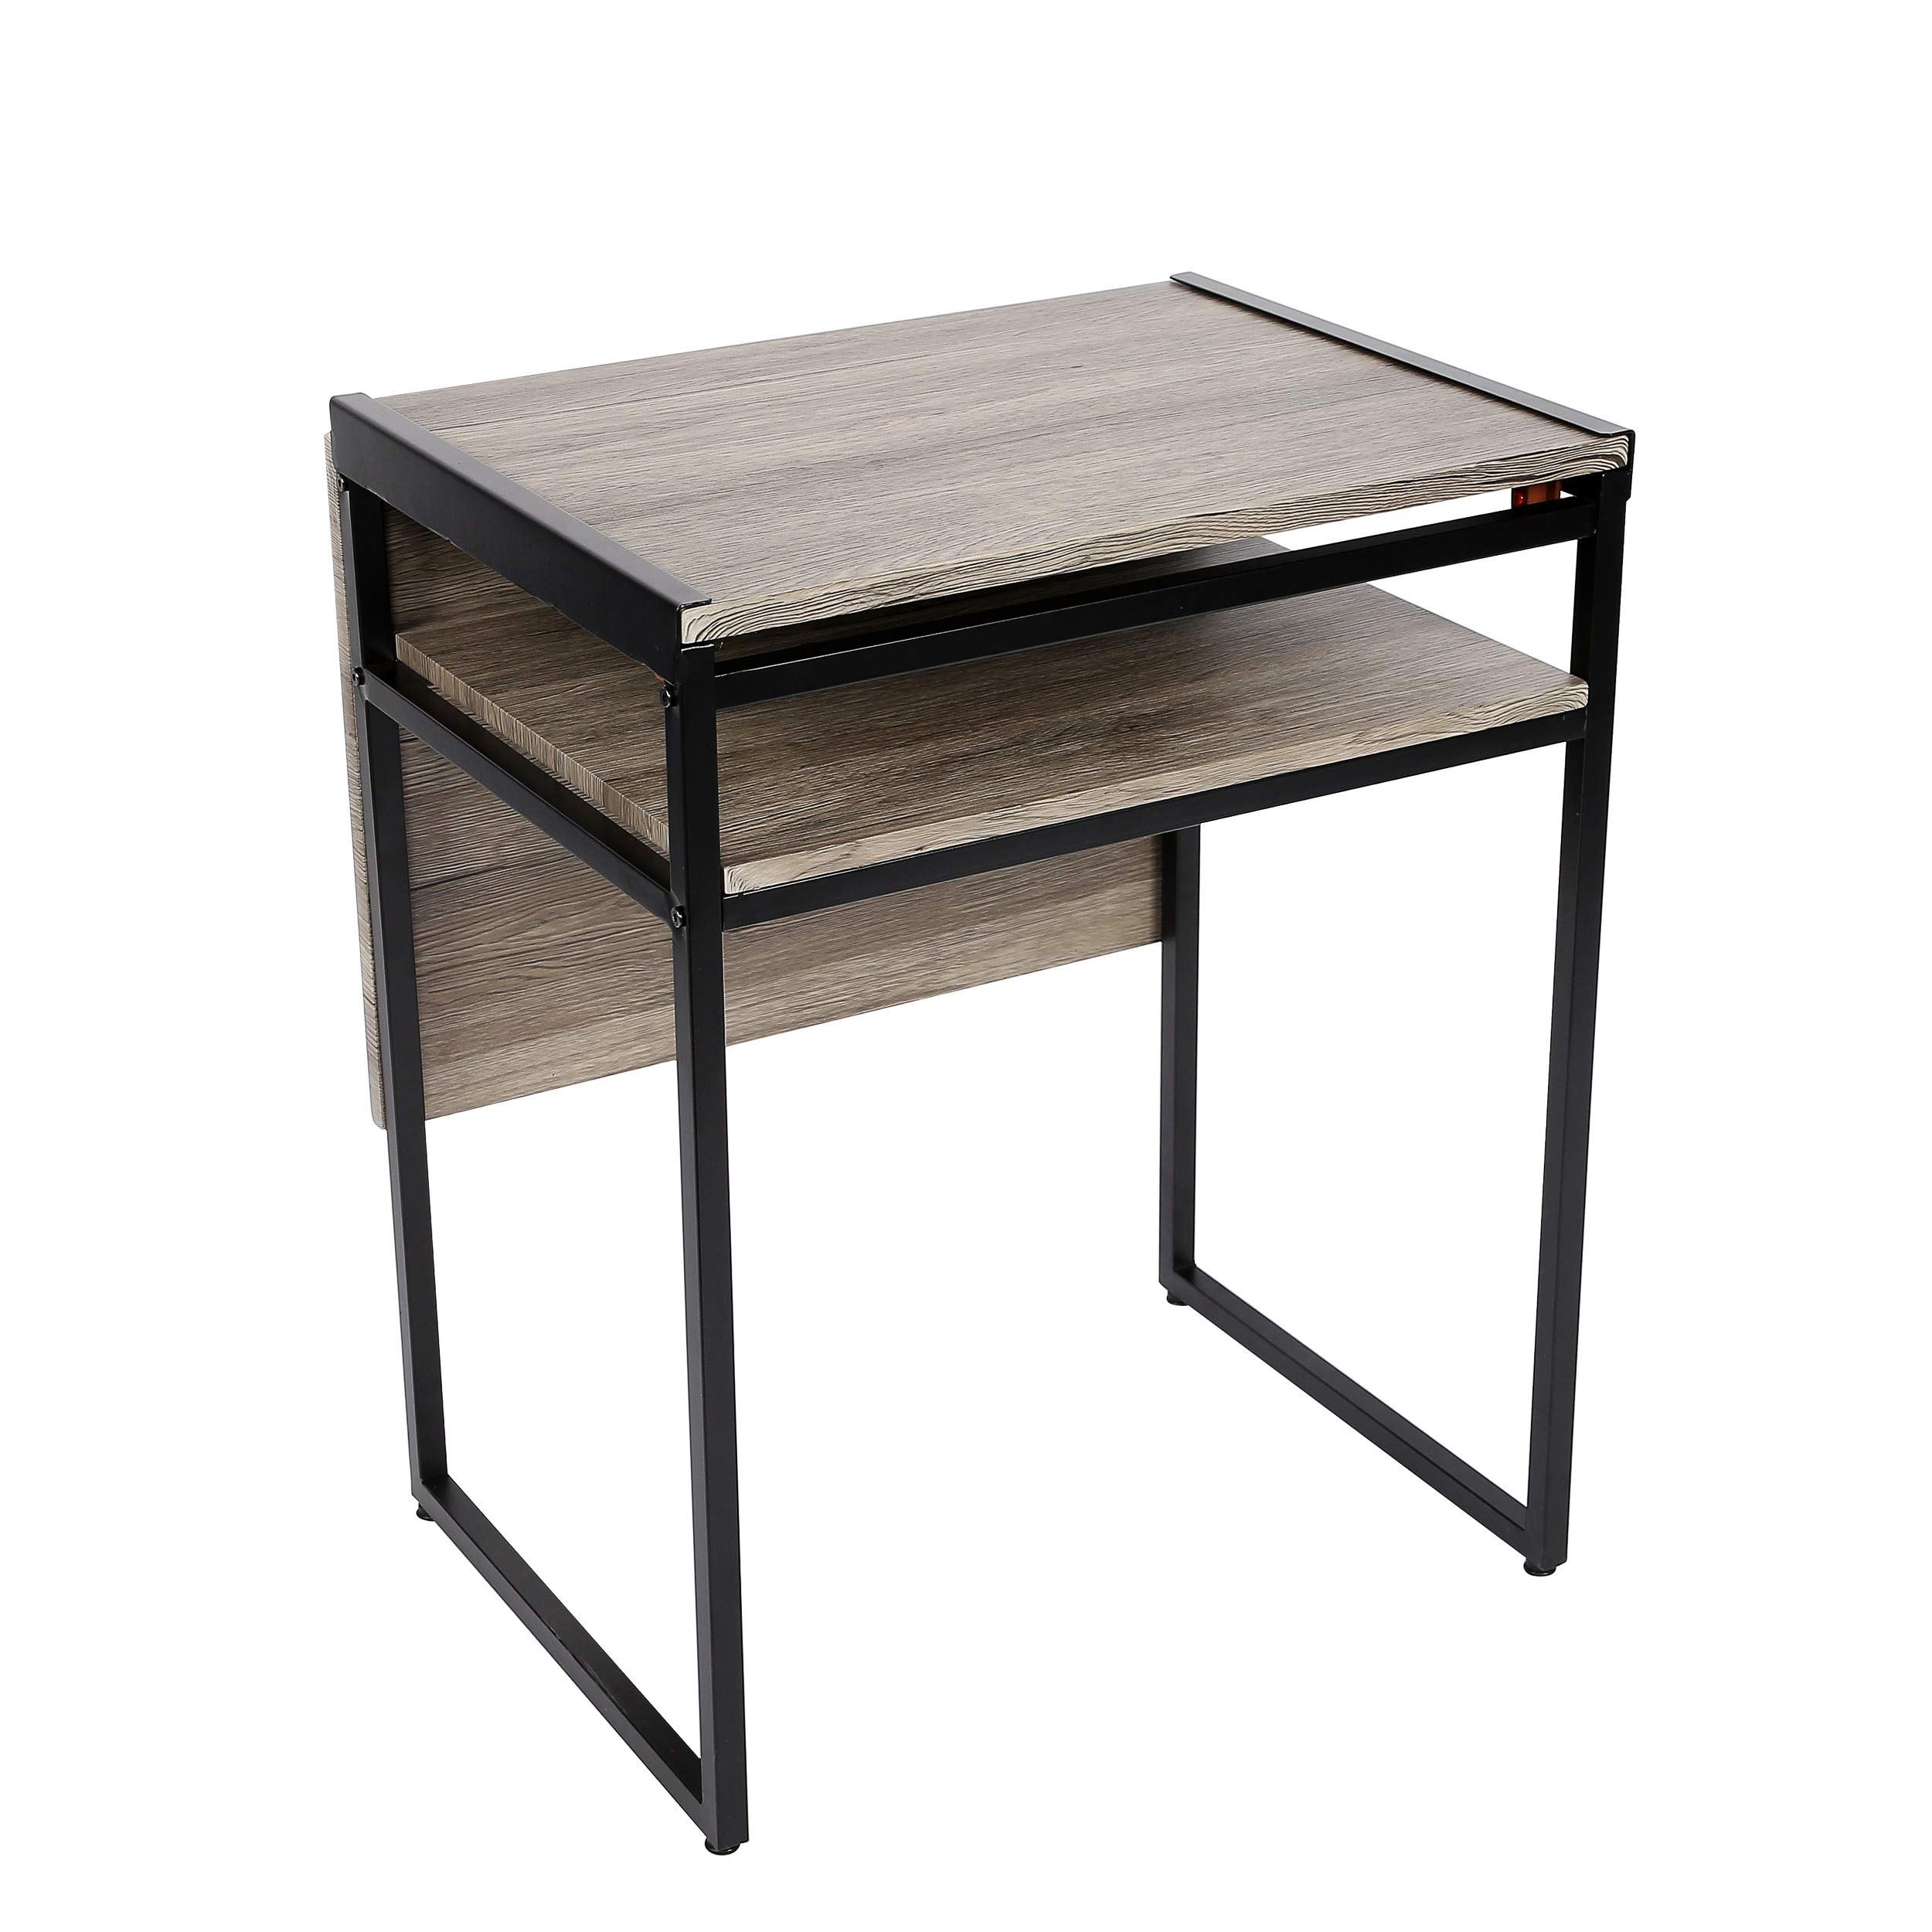 SpaceMaster SMT-08D-BL Small Space Desk and Dining Black Table 35.4 X 29.9 X 23.6